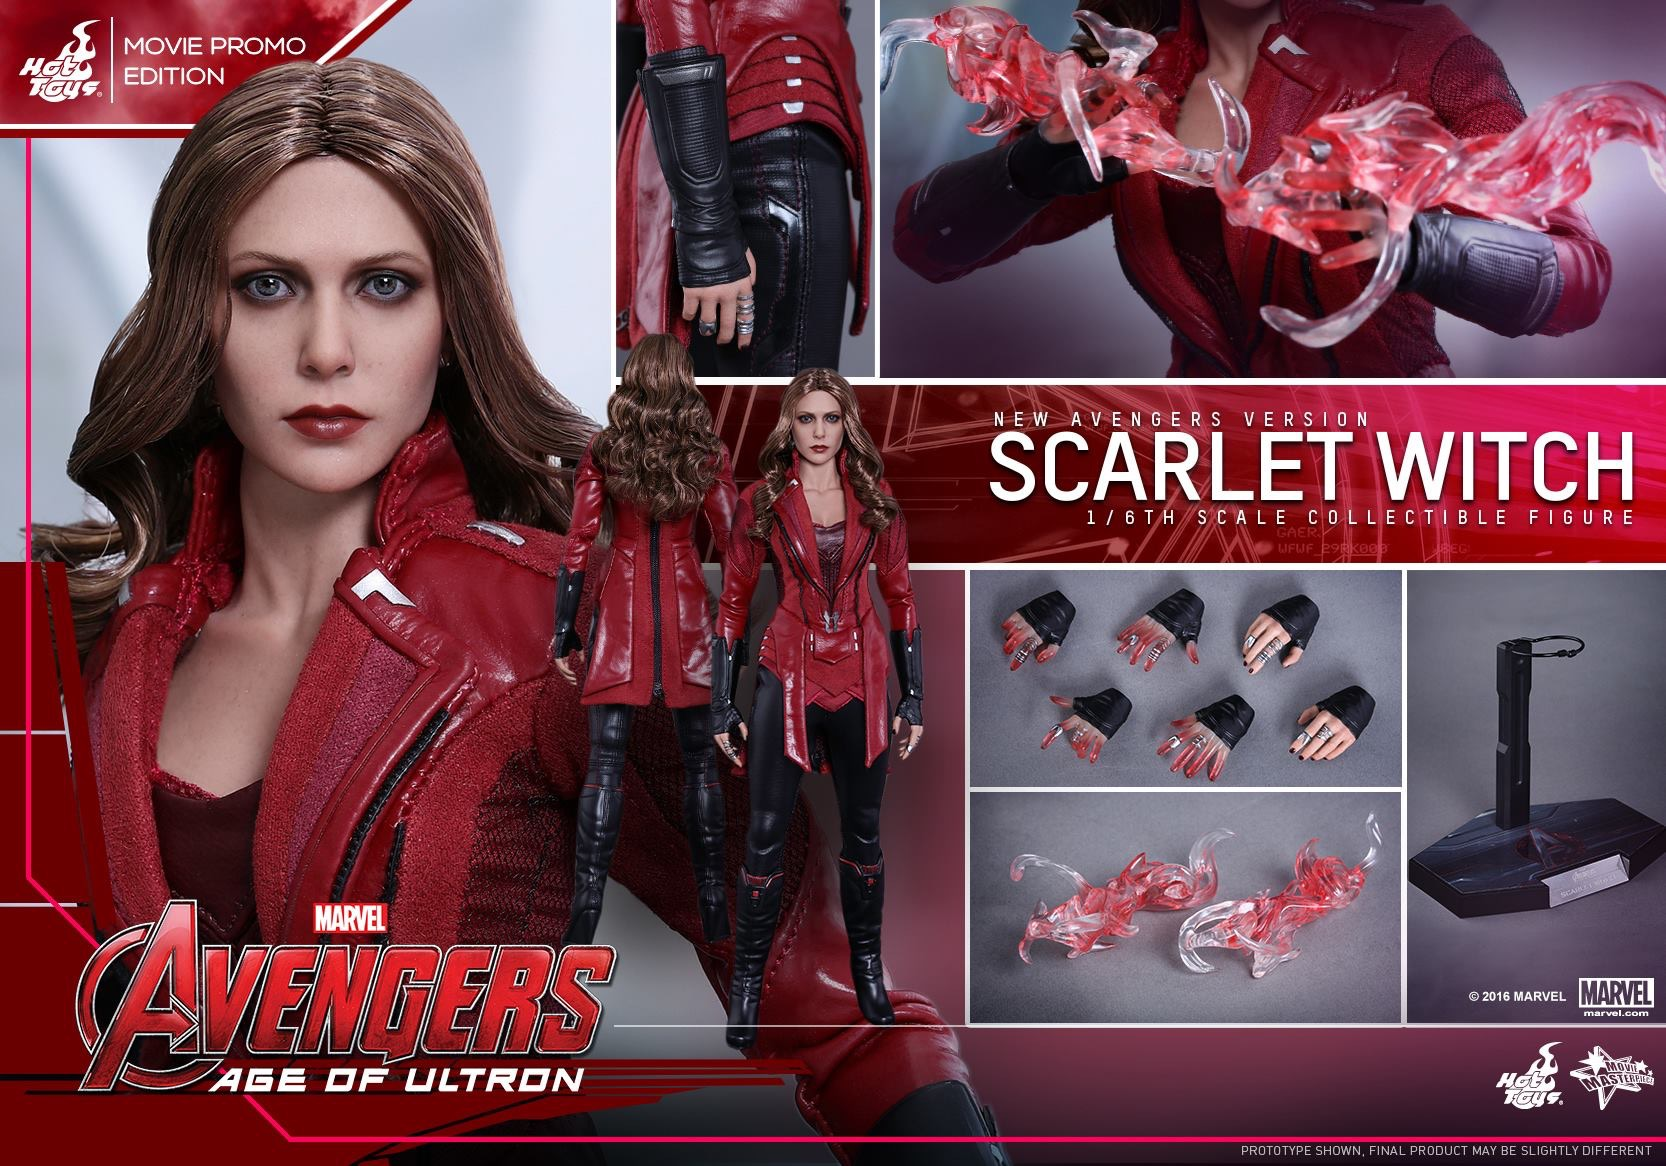 AVENGERS 2 : AGE OF ULTRON - SCARLET WITCH (MM$357) 160415024956294660